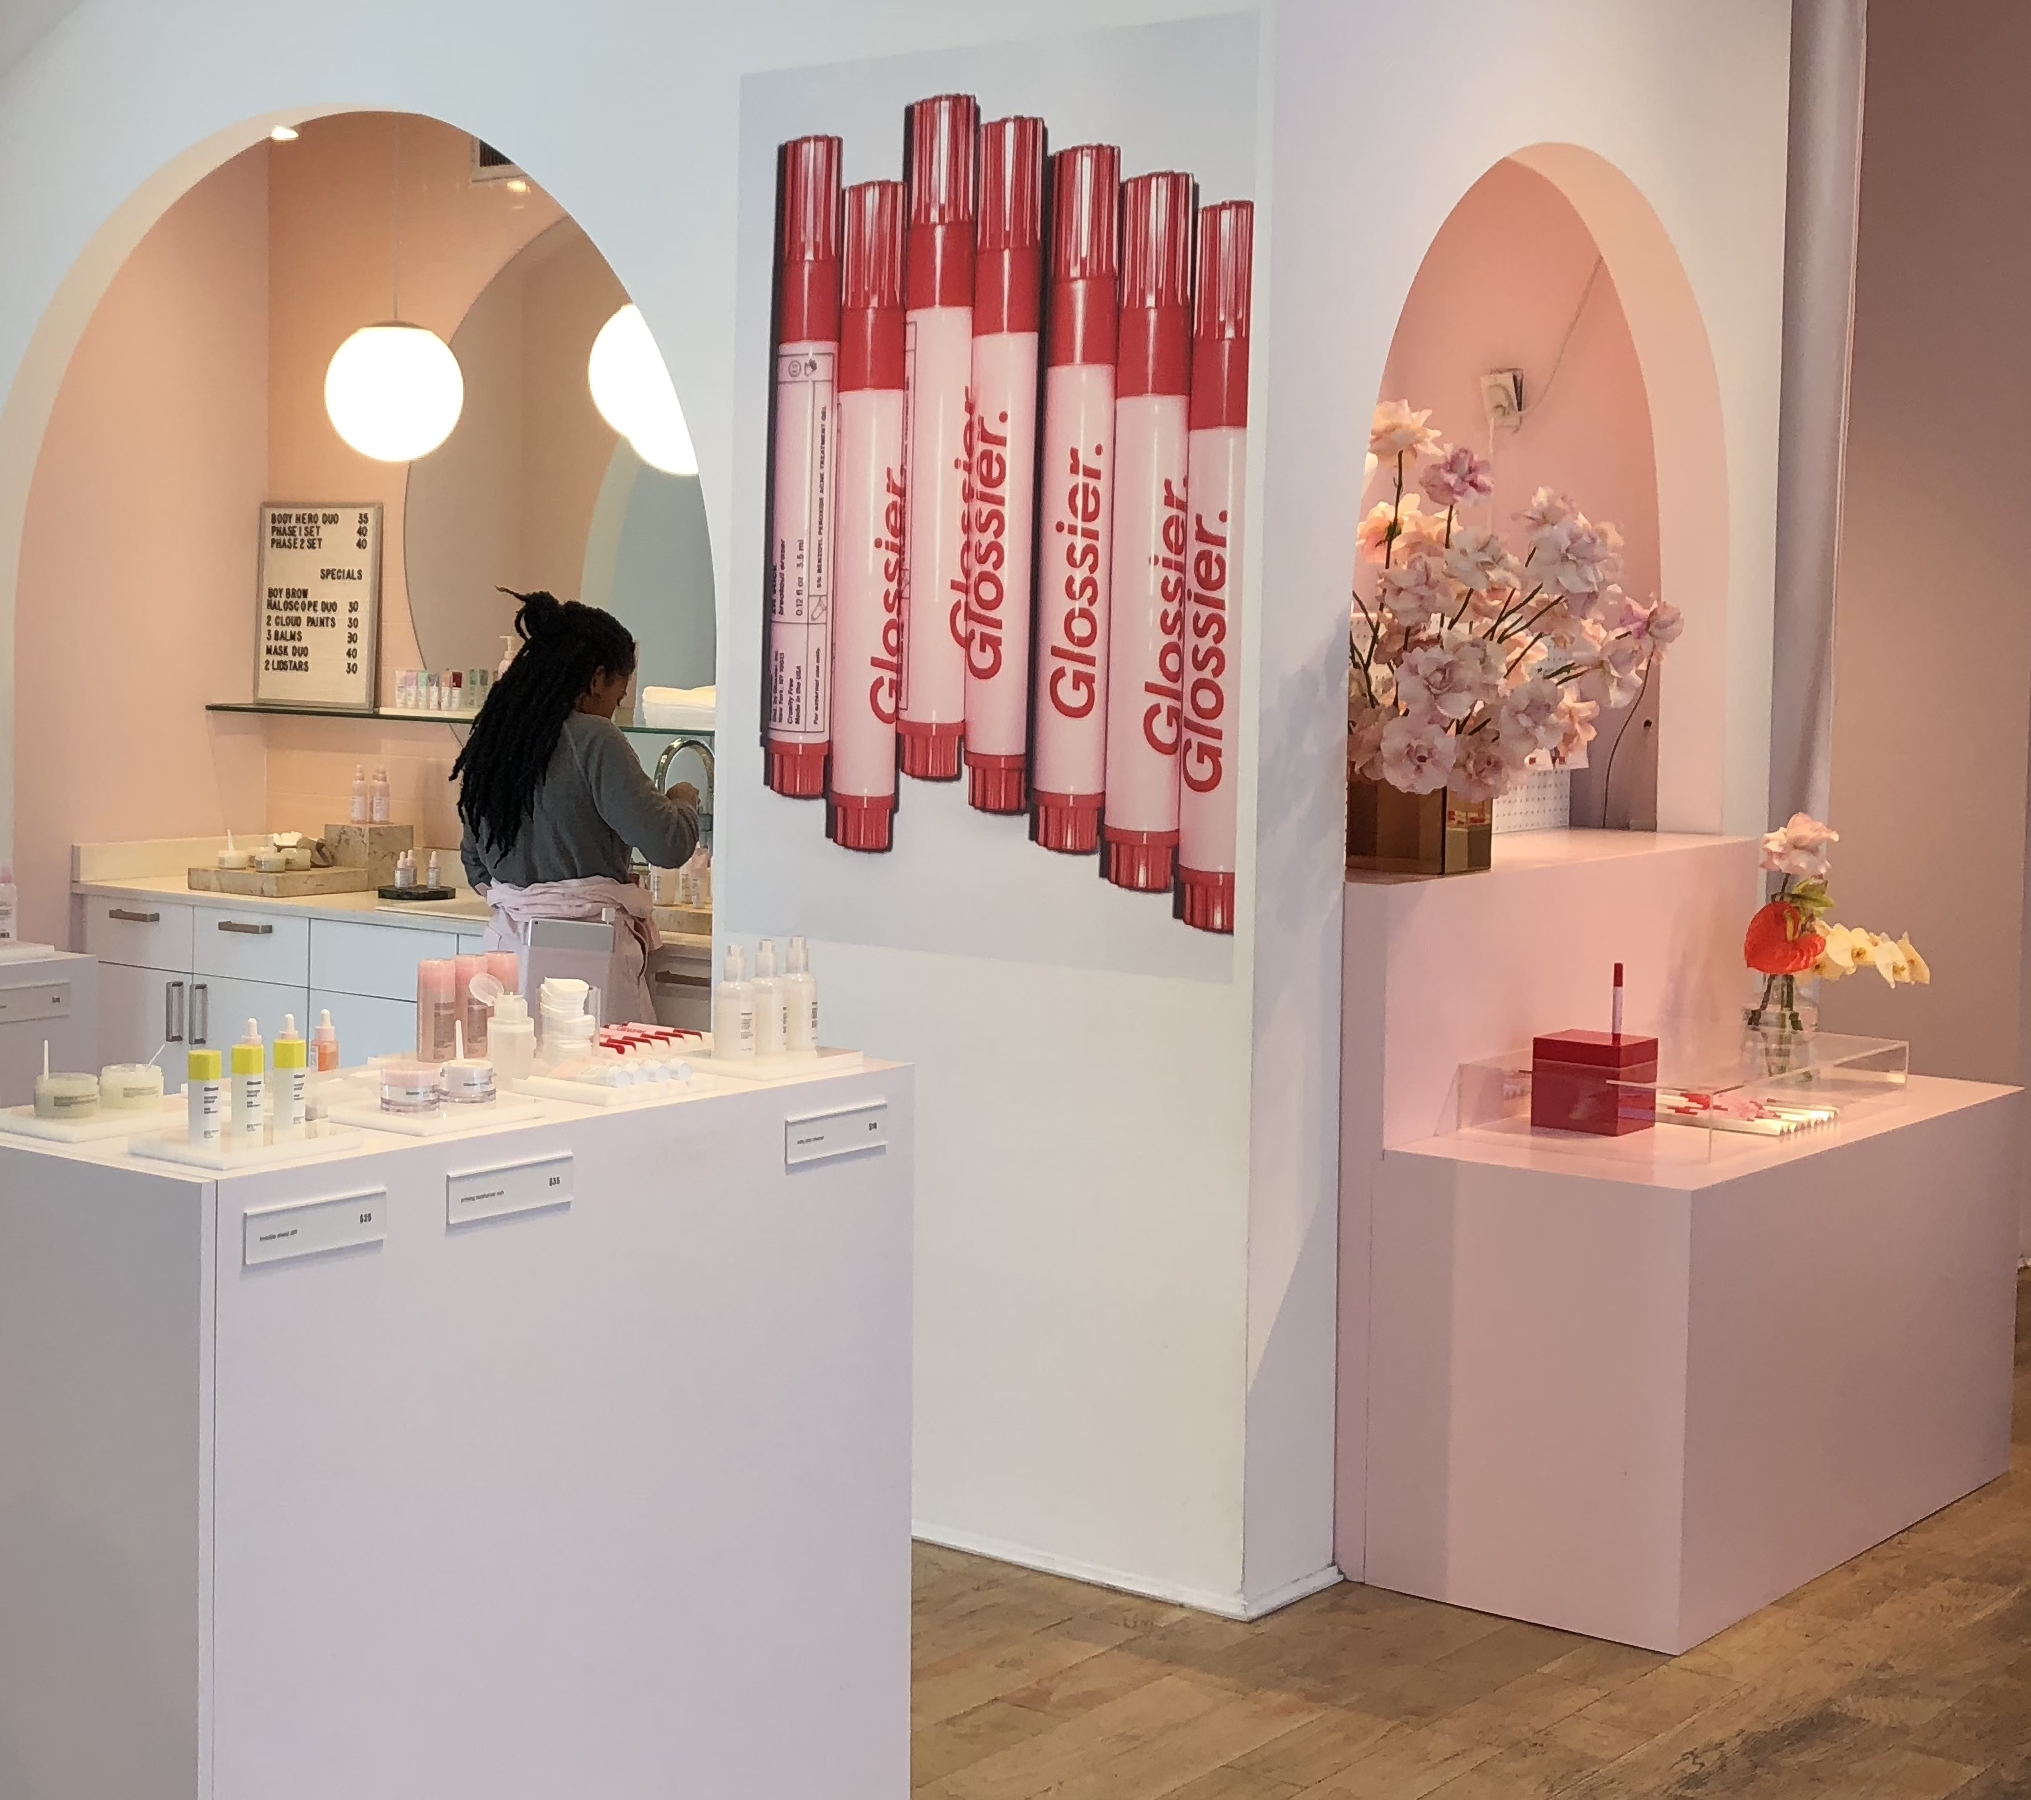 Glossier physical location delightful customer experience